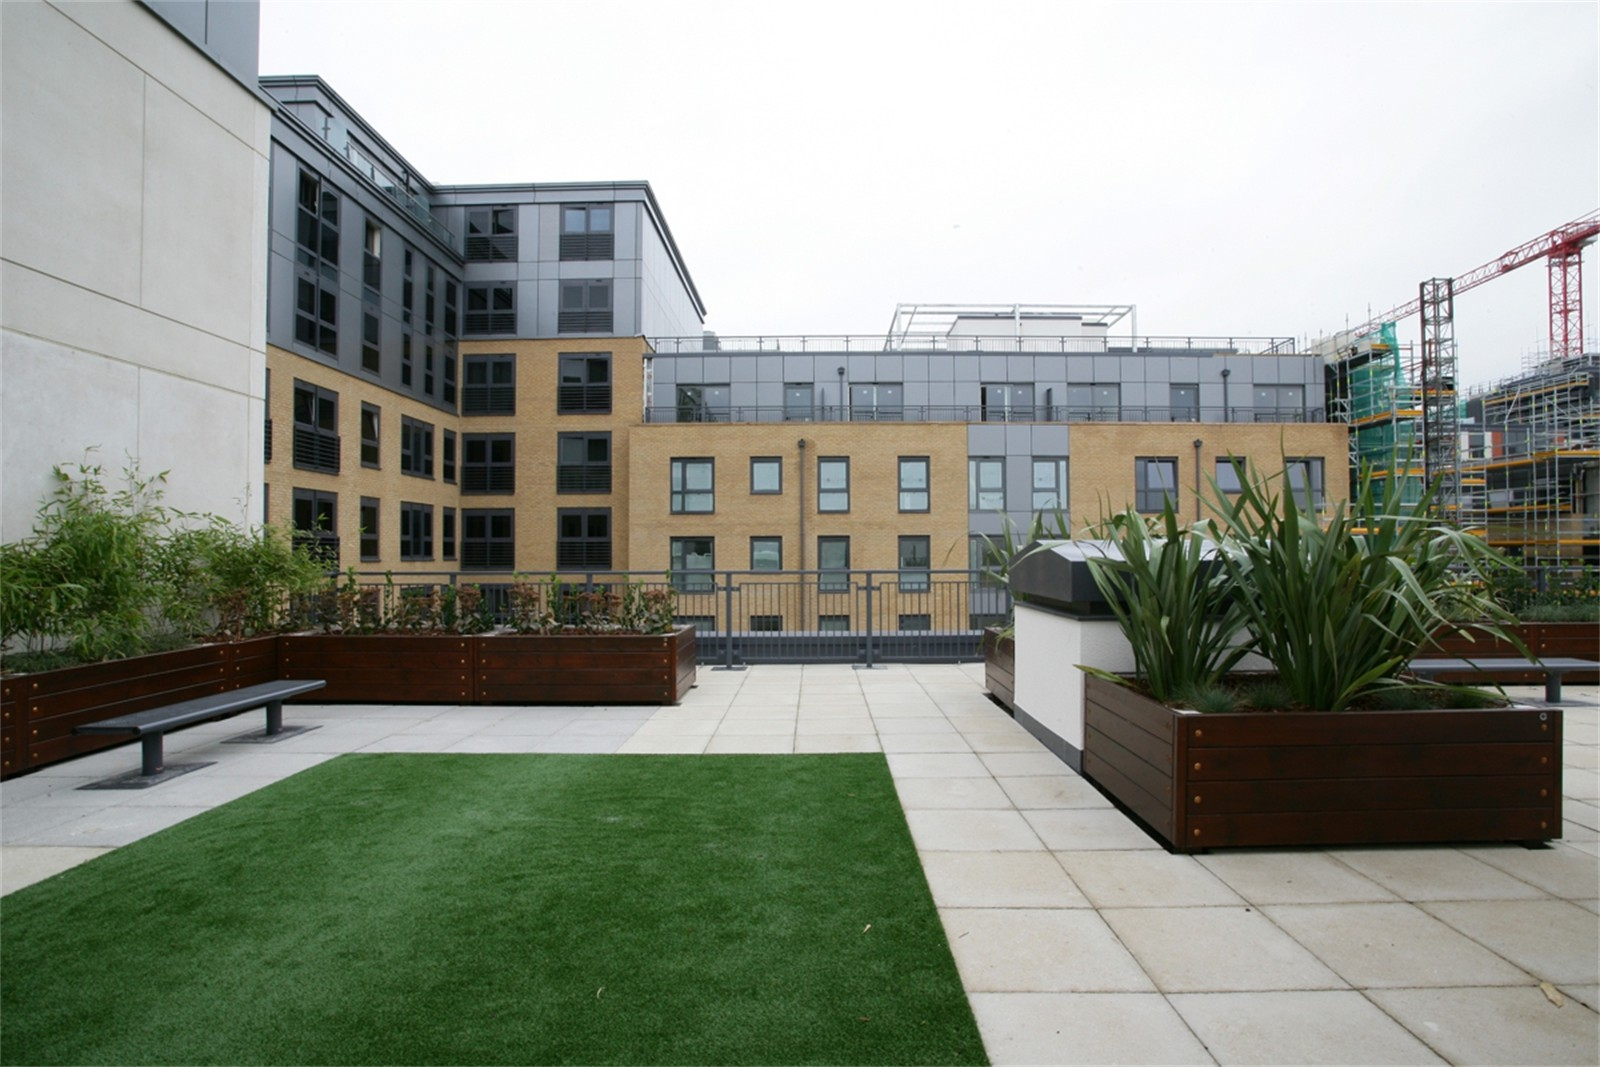 c124c - Imperial Wharf residential development, roof top planters